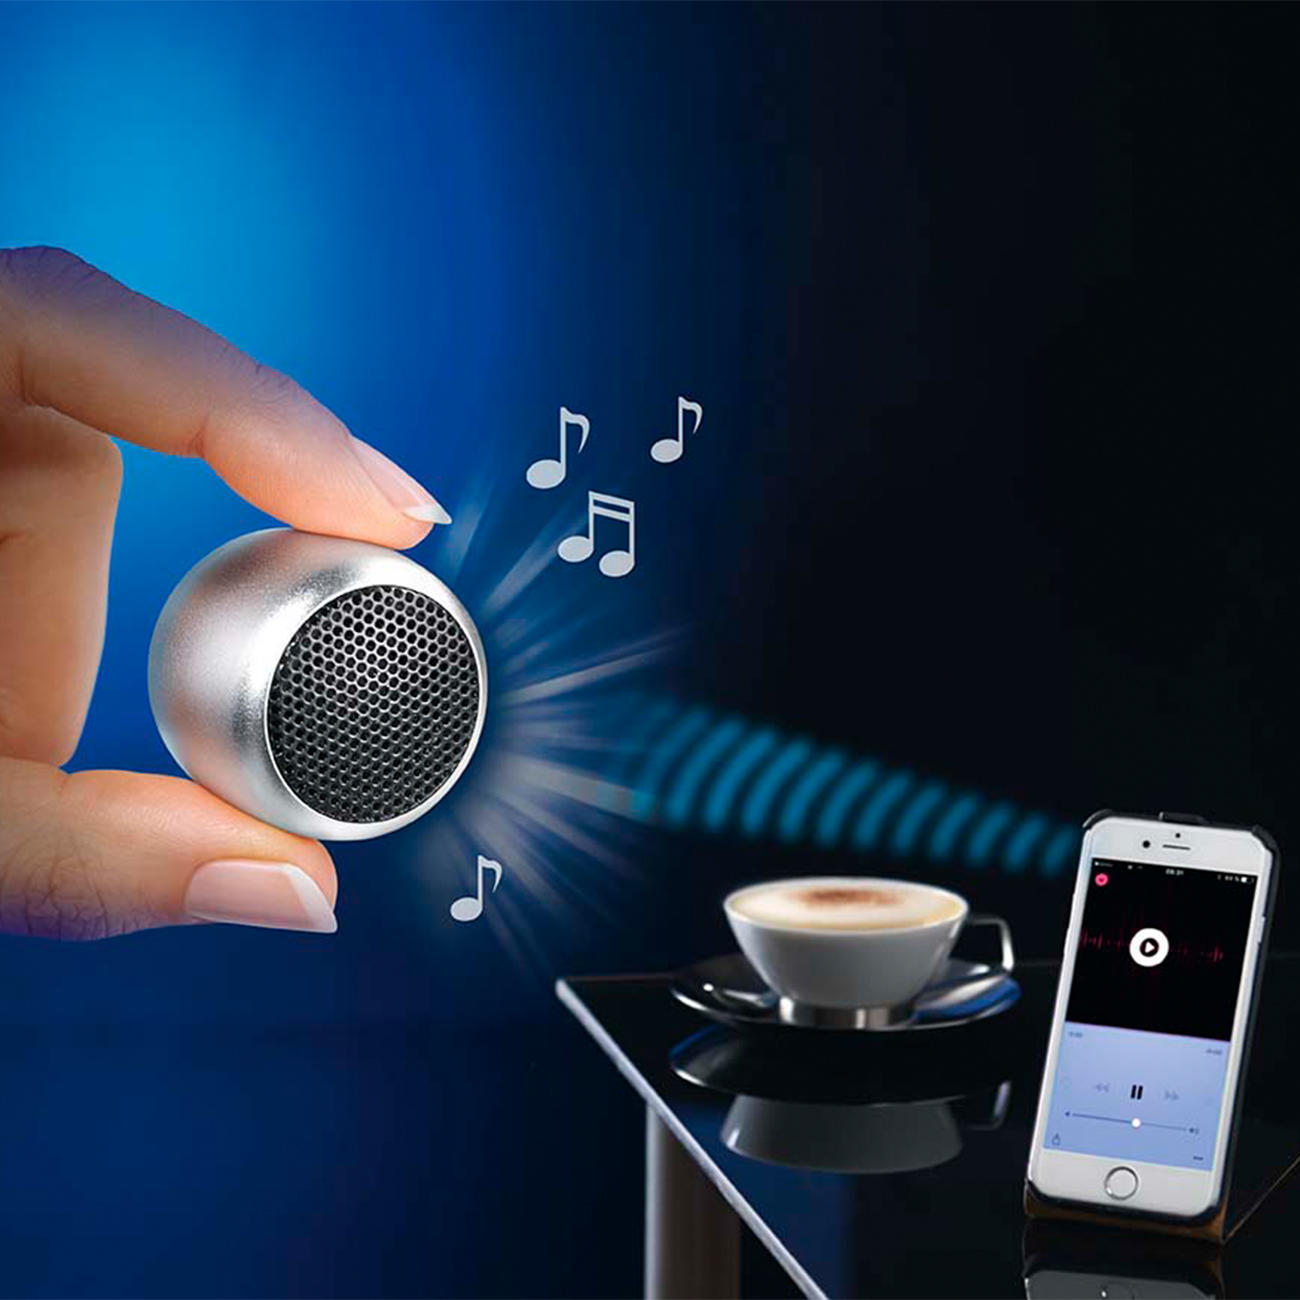 mini bluetooth lautsprecher mini speaker silber 3 4 x 2 5 cm durchmesser x h. Black Bedroom Furniture Sets. Home Design Ideas